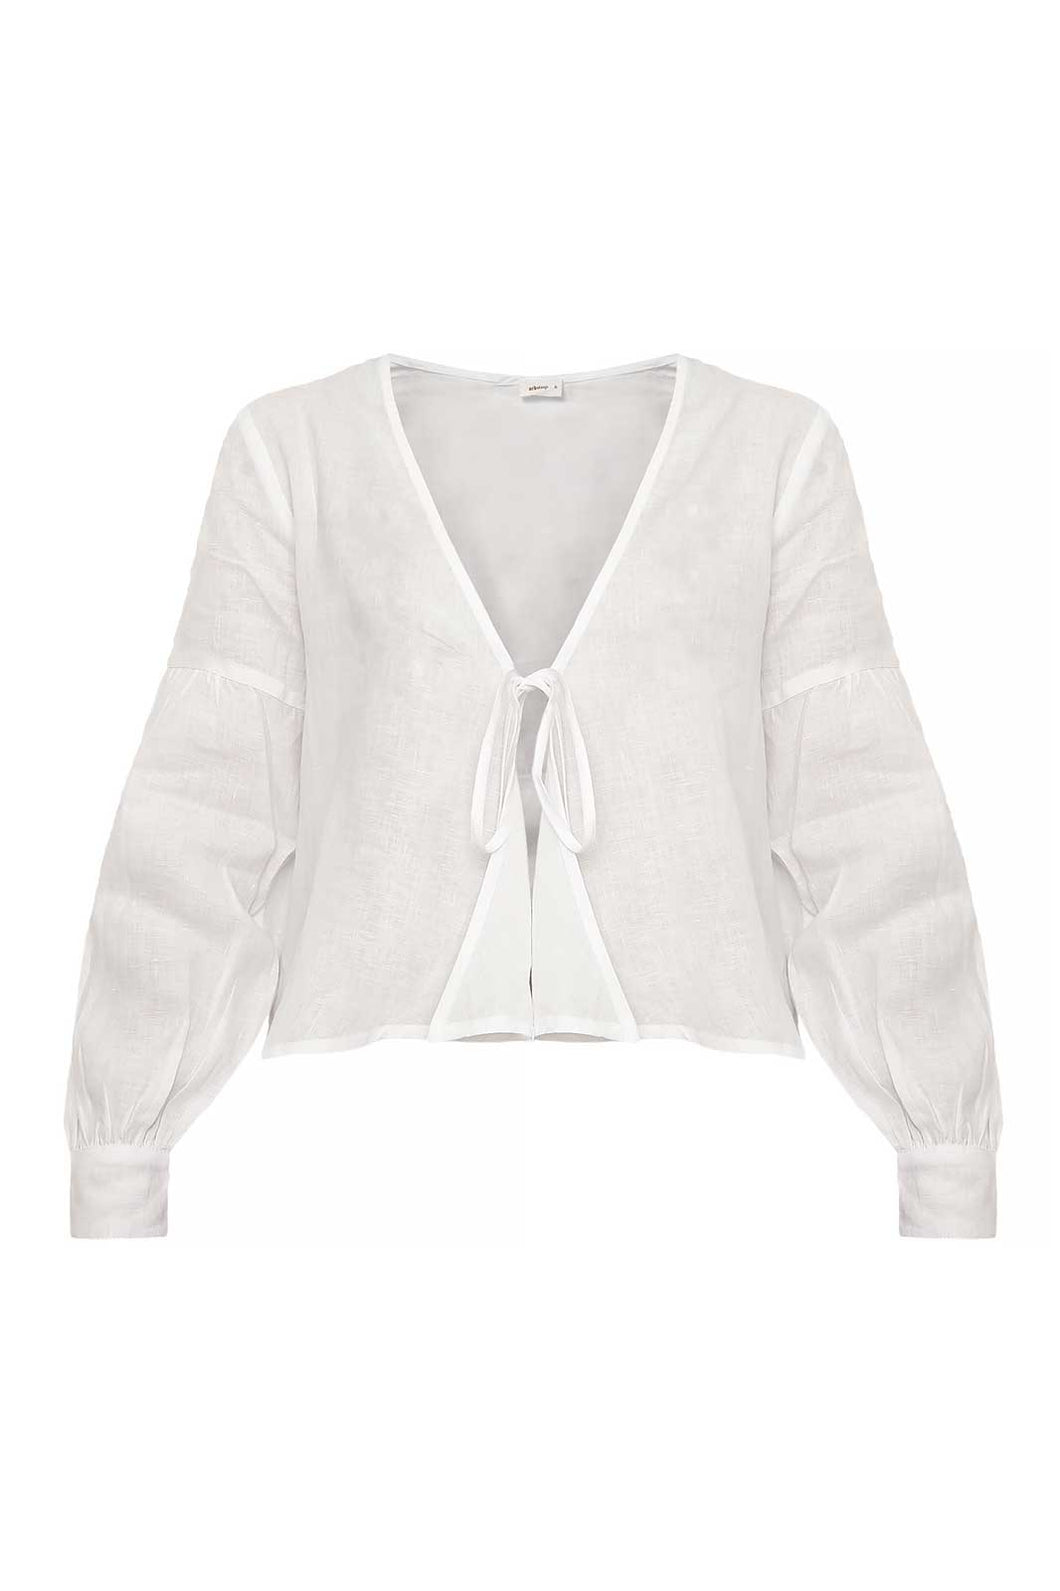 The Anna Blouse in White